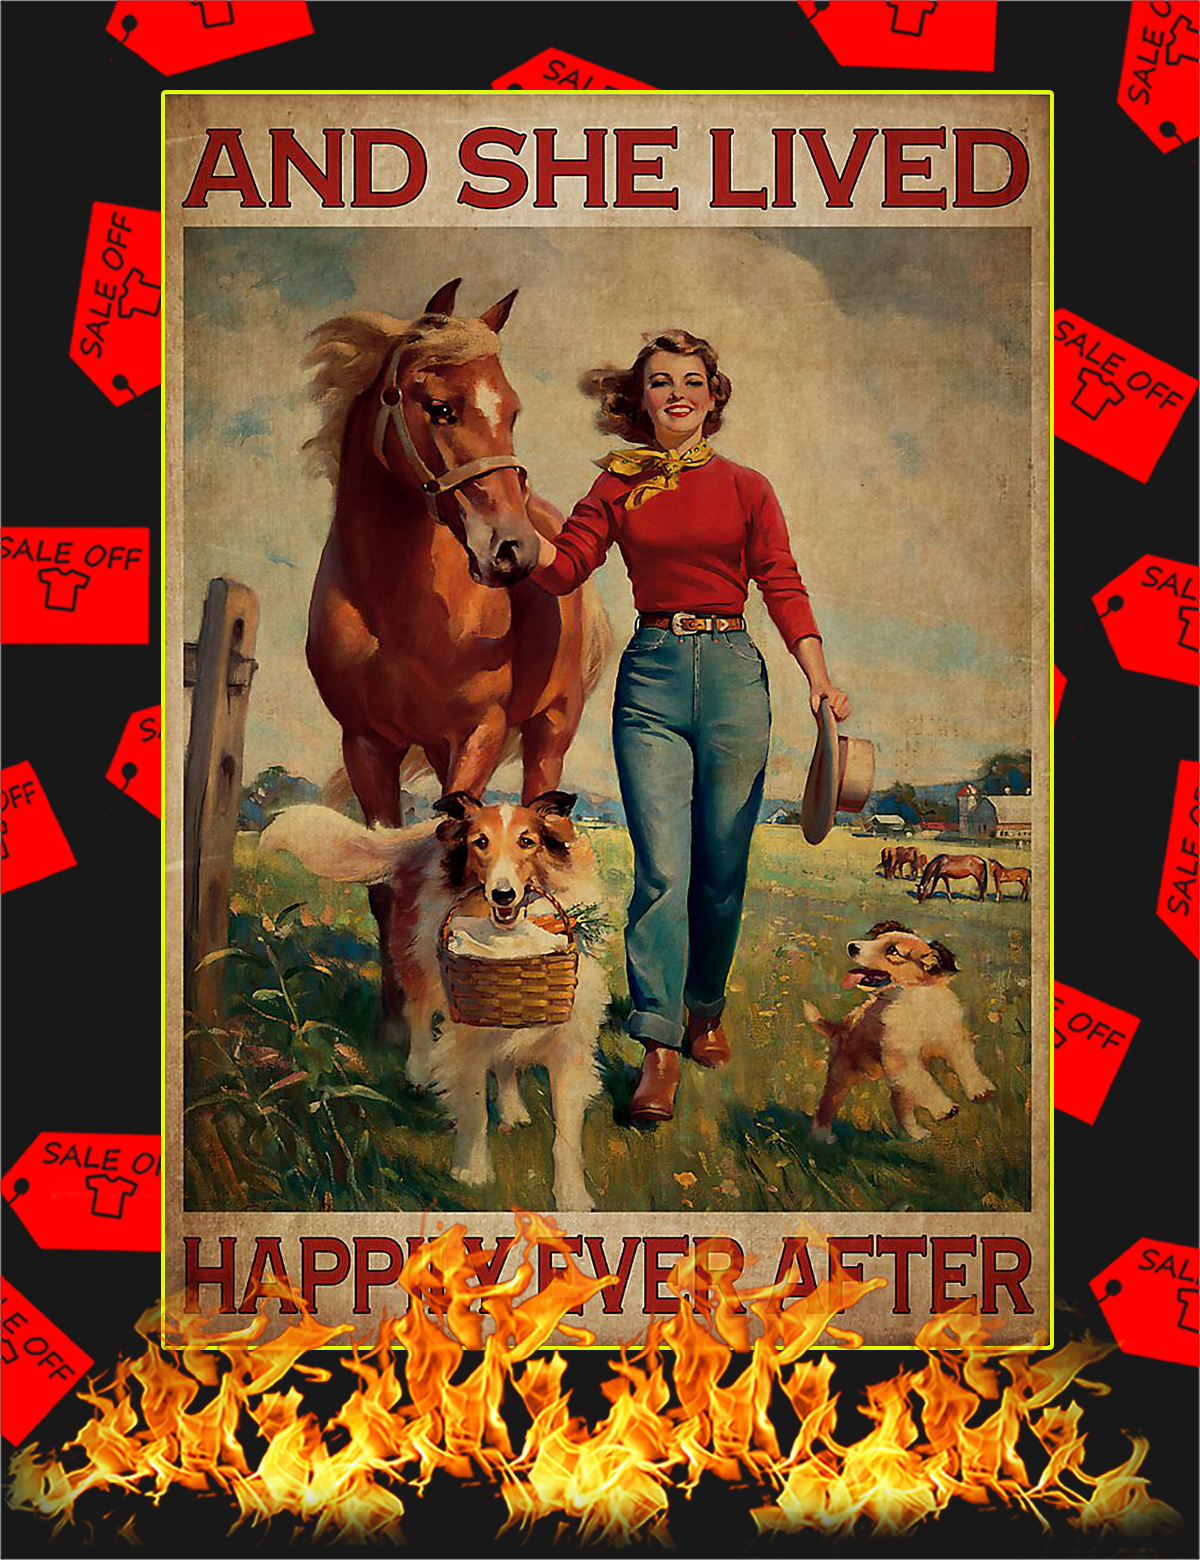 And she lived happily ever after horse and dog poster